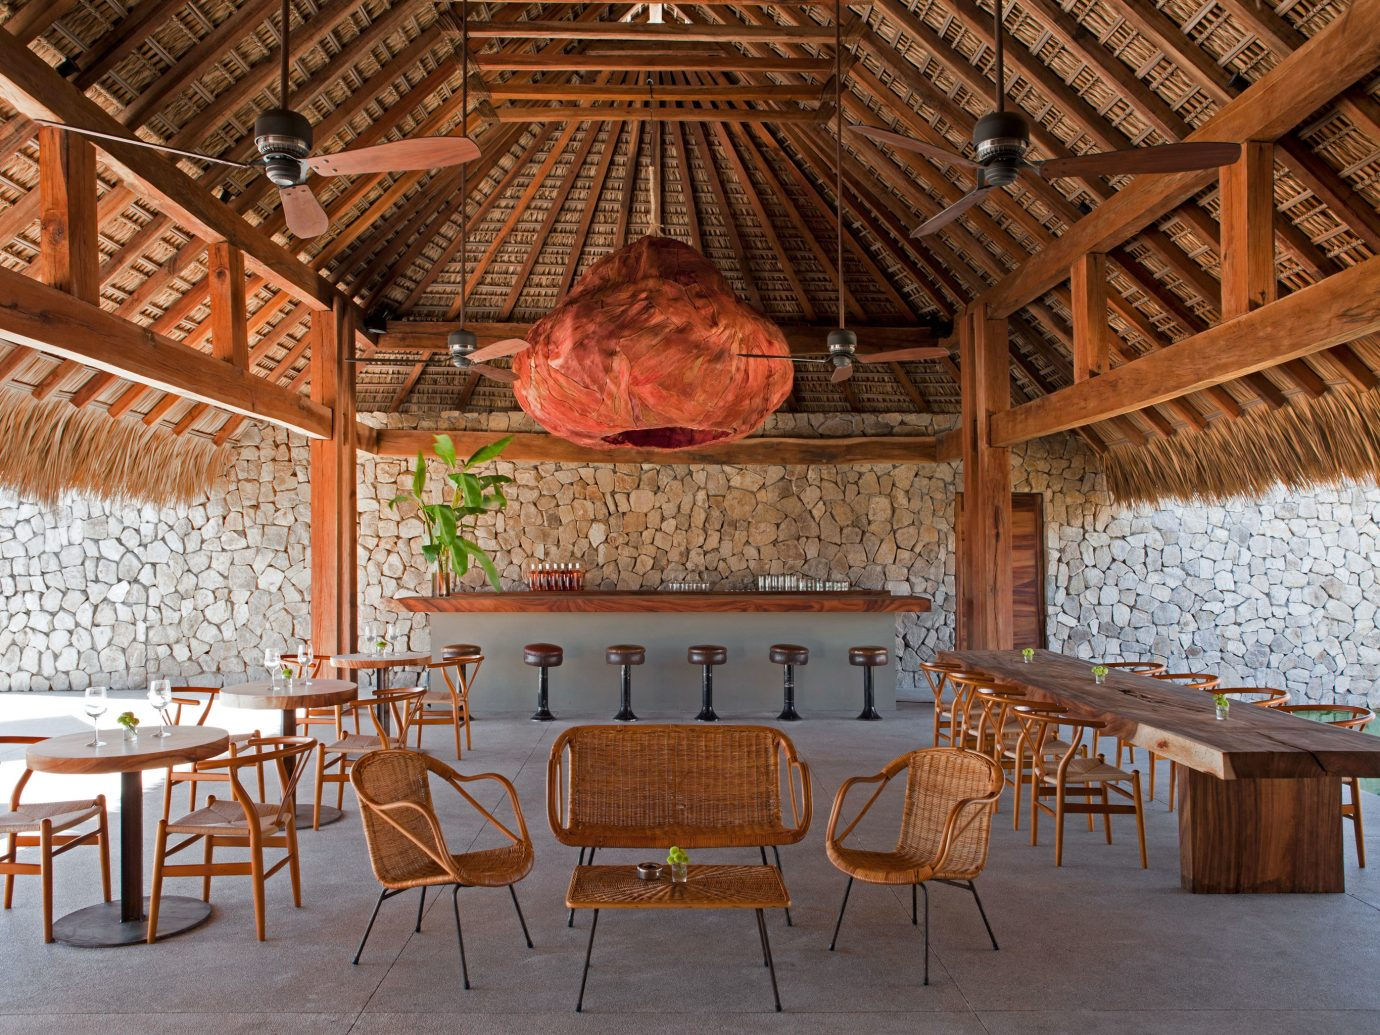 Outdoor dining at Hotel Escondido, Puerto Escondido, Mexico